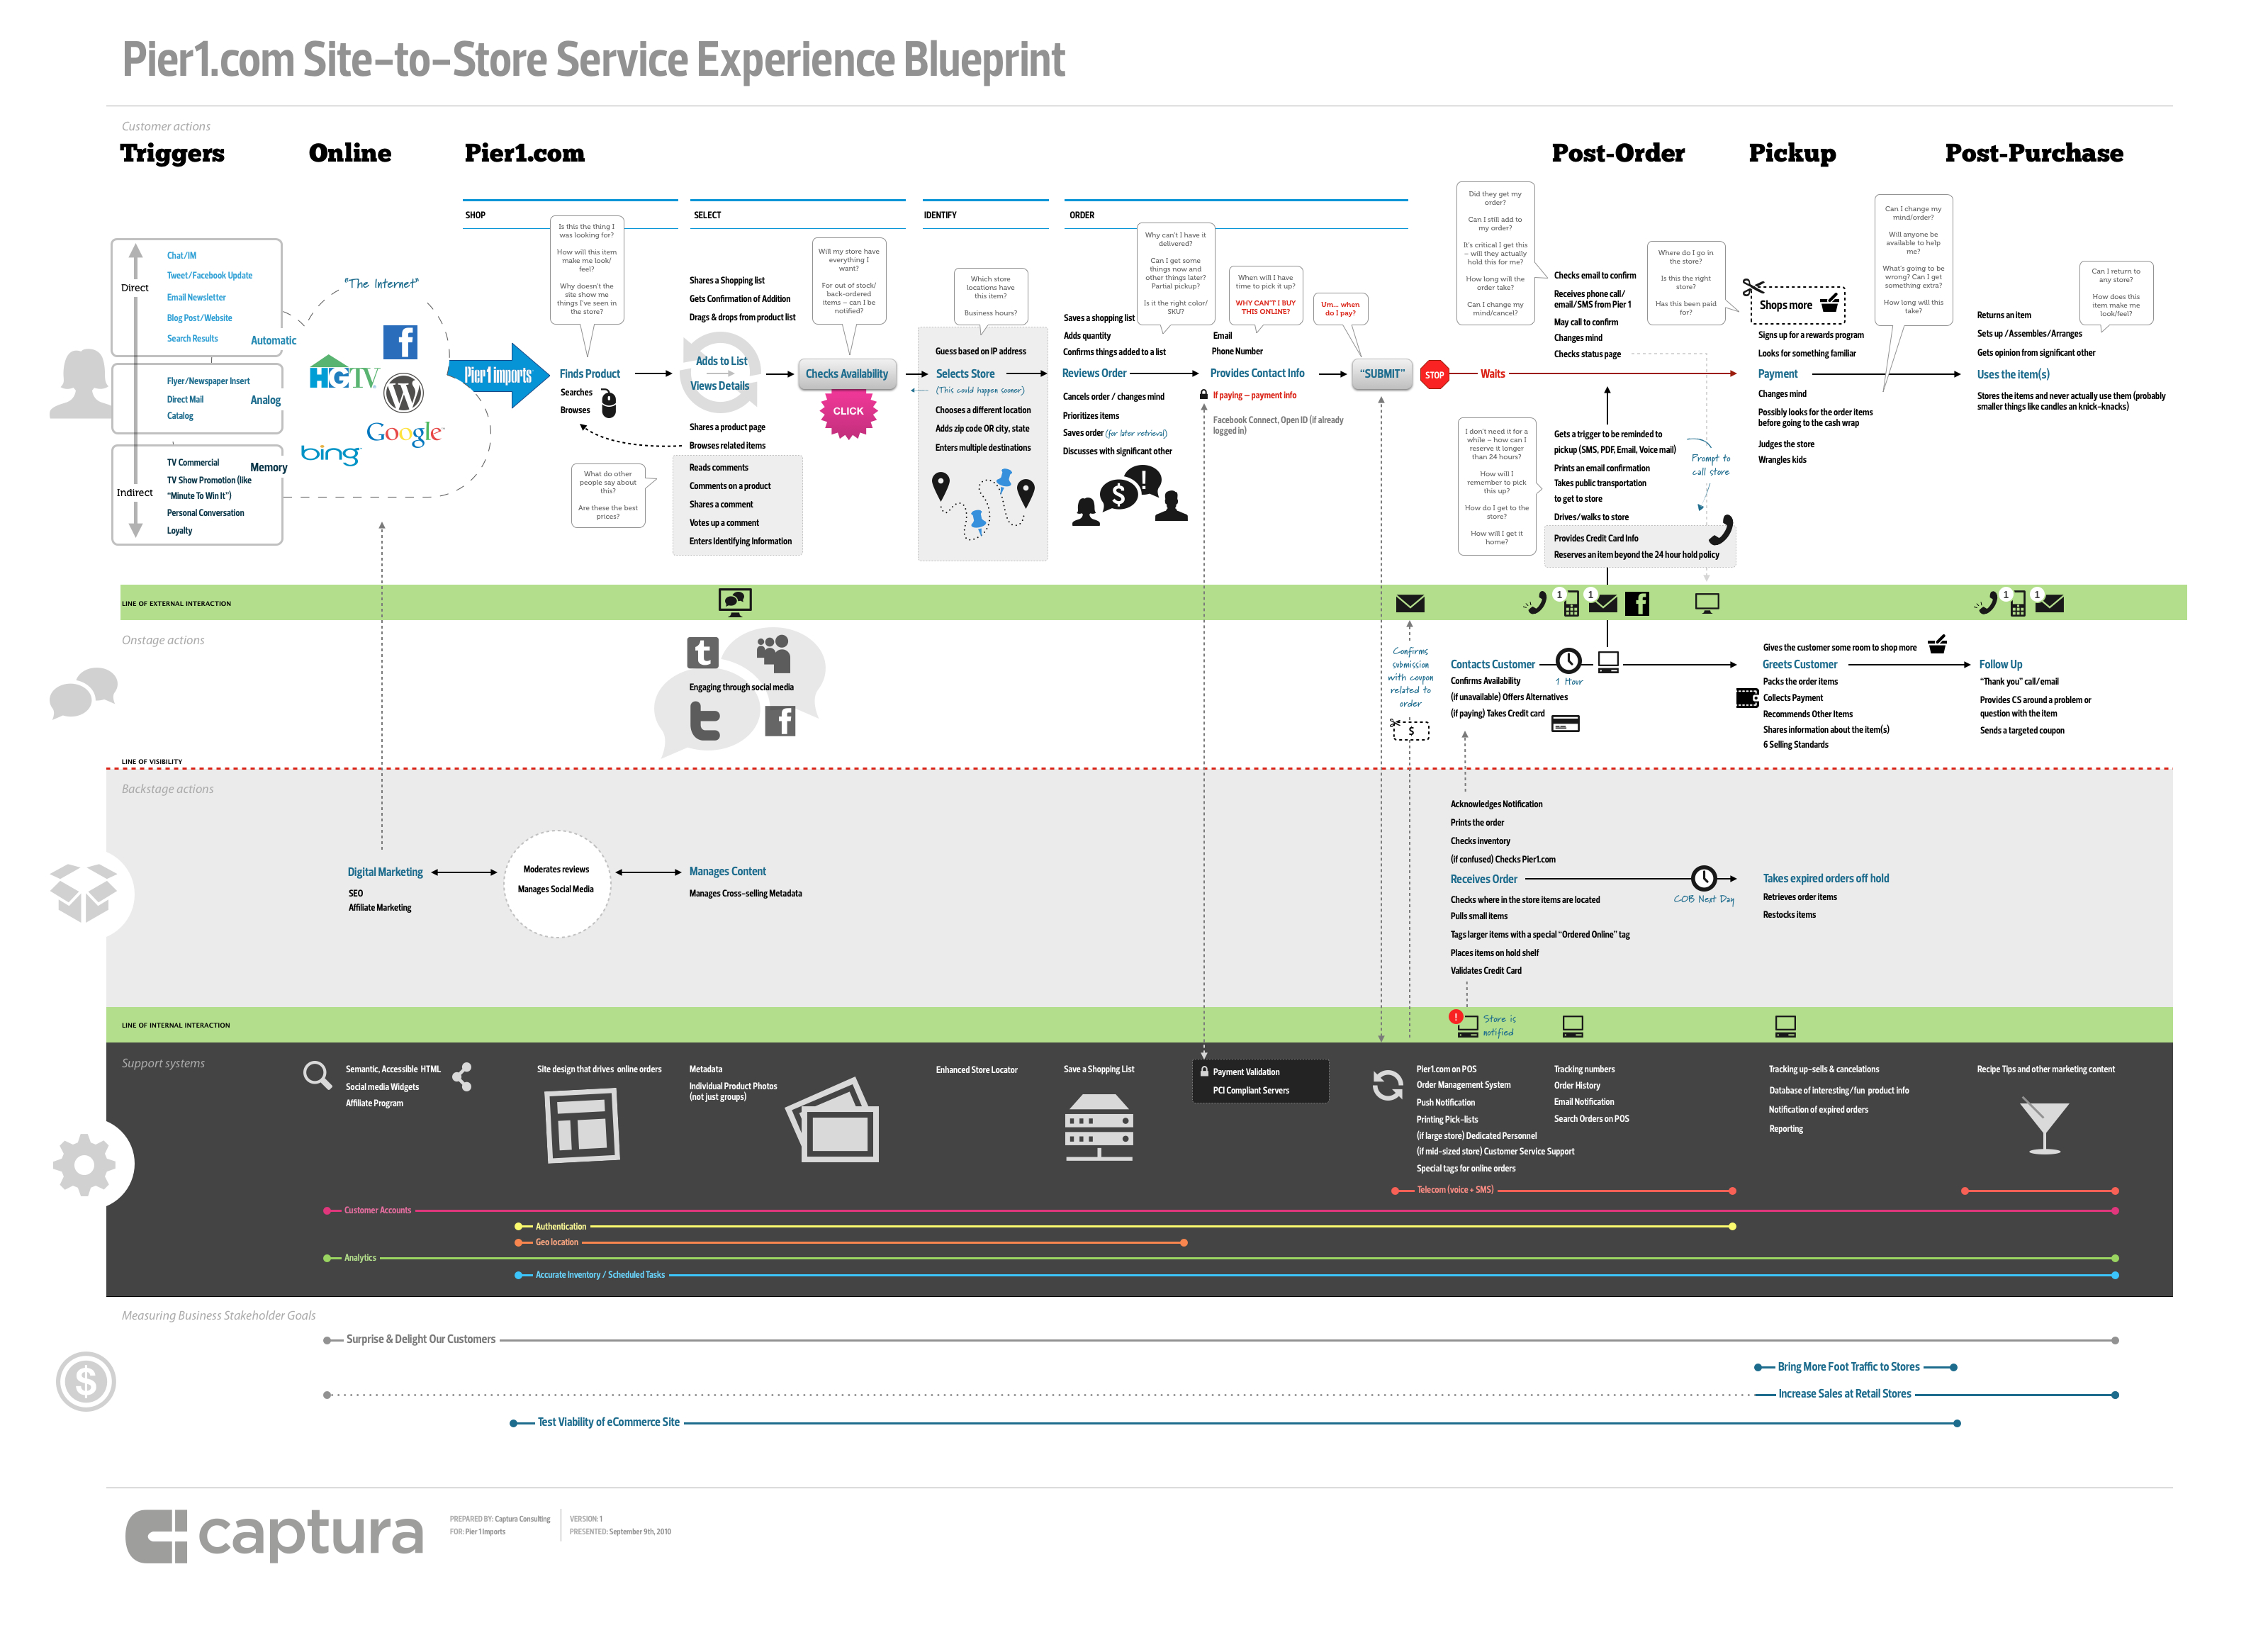 Service operation processes service strategy service design service - Pier1 Com Site To Store Service Experience Blueprint